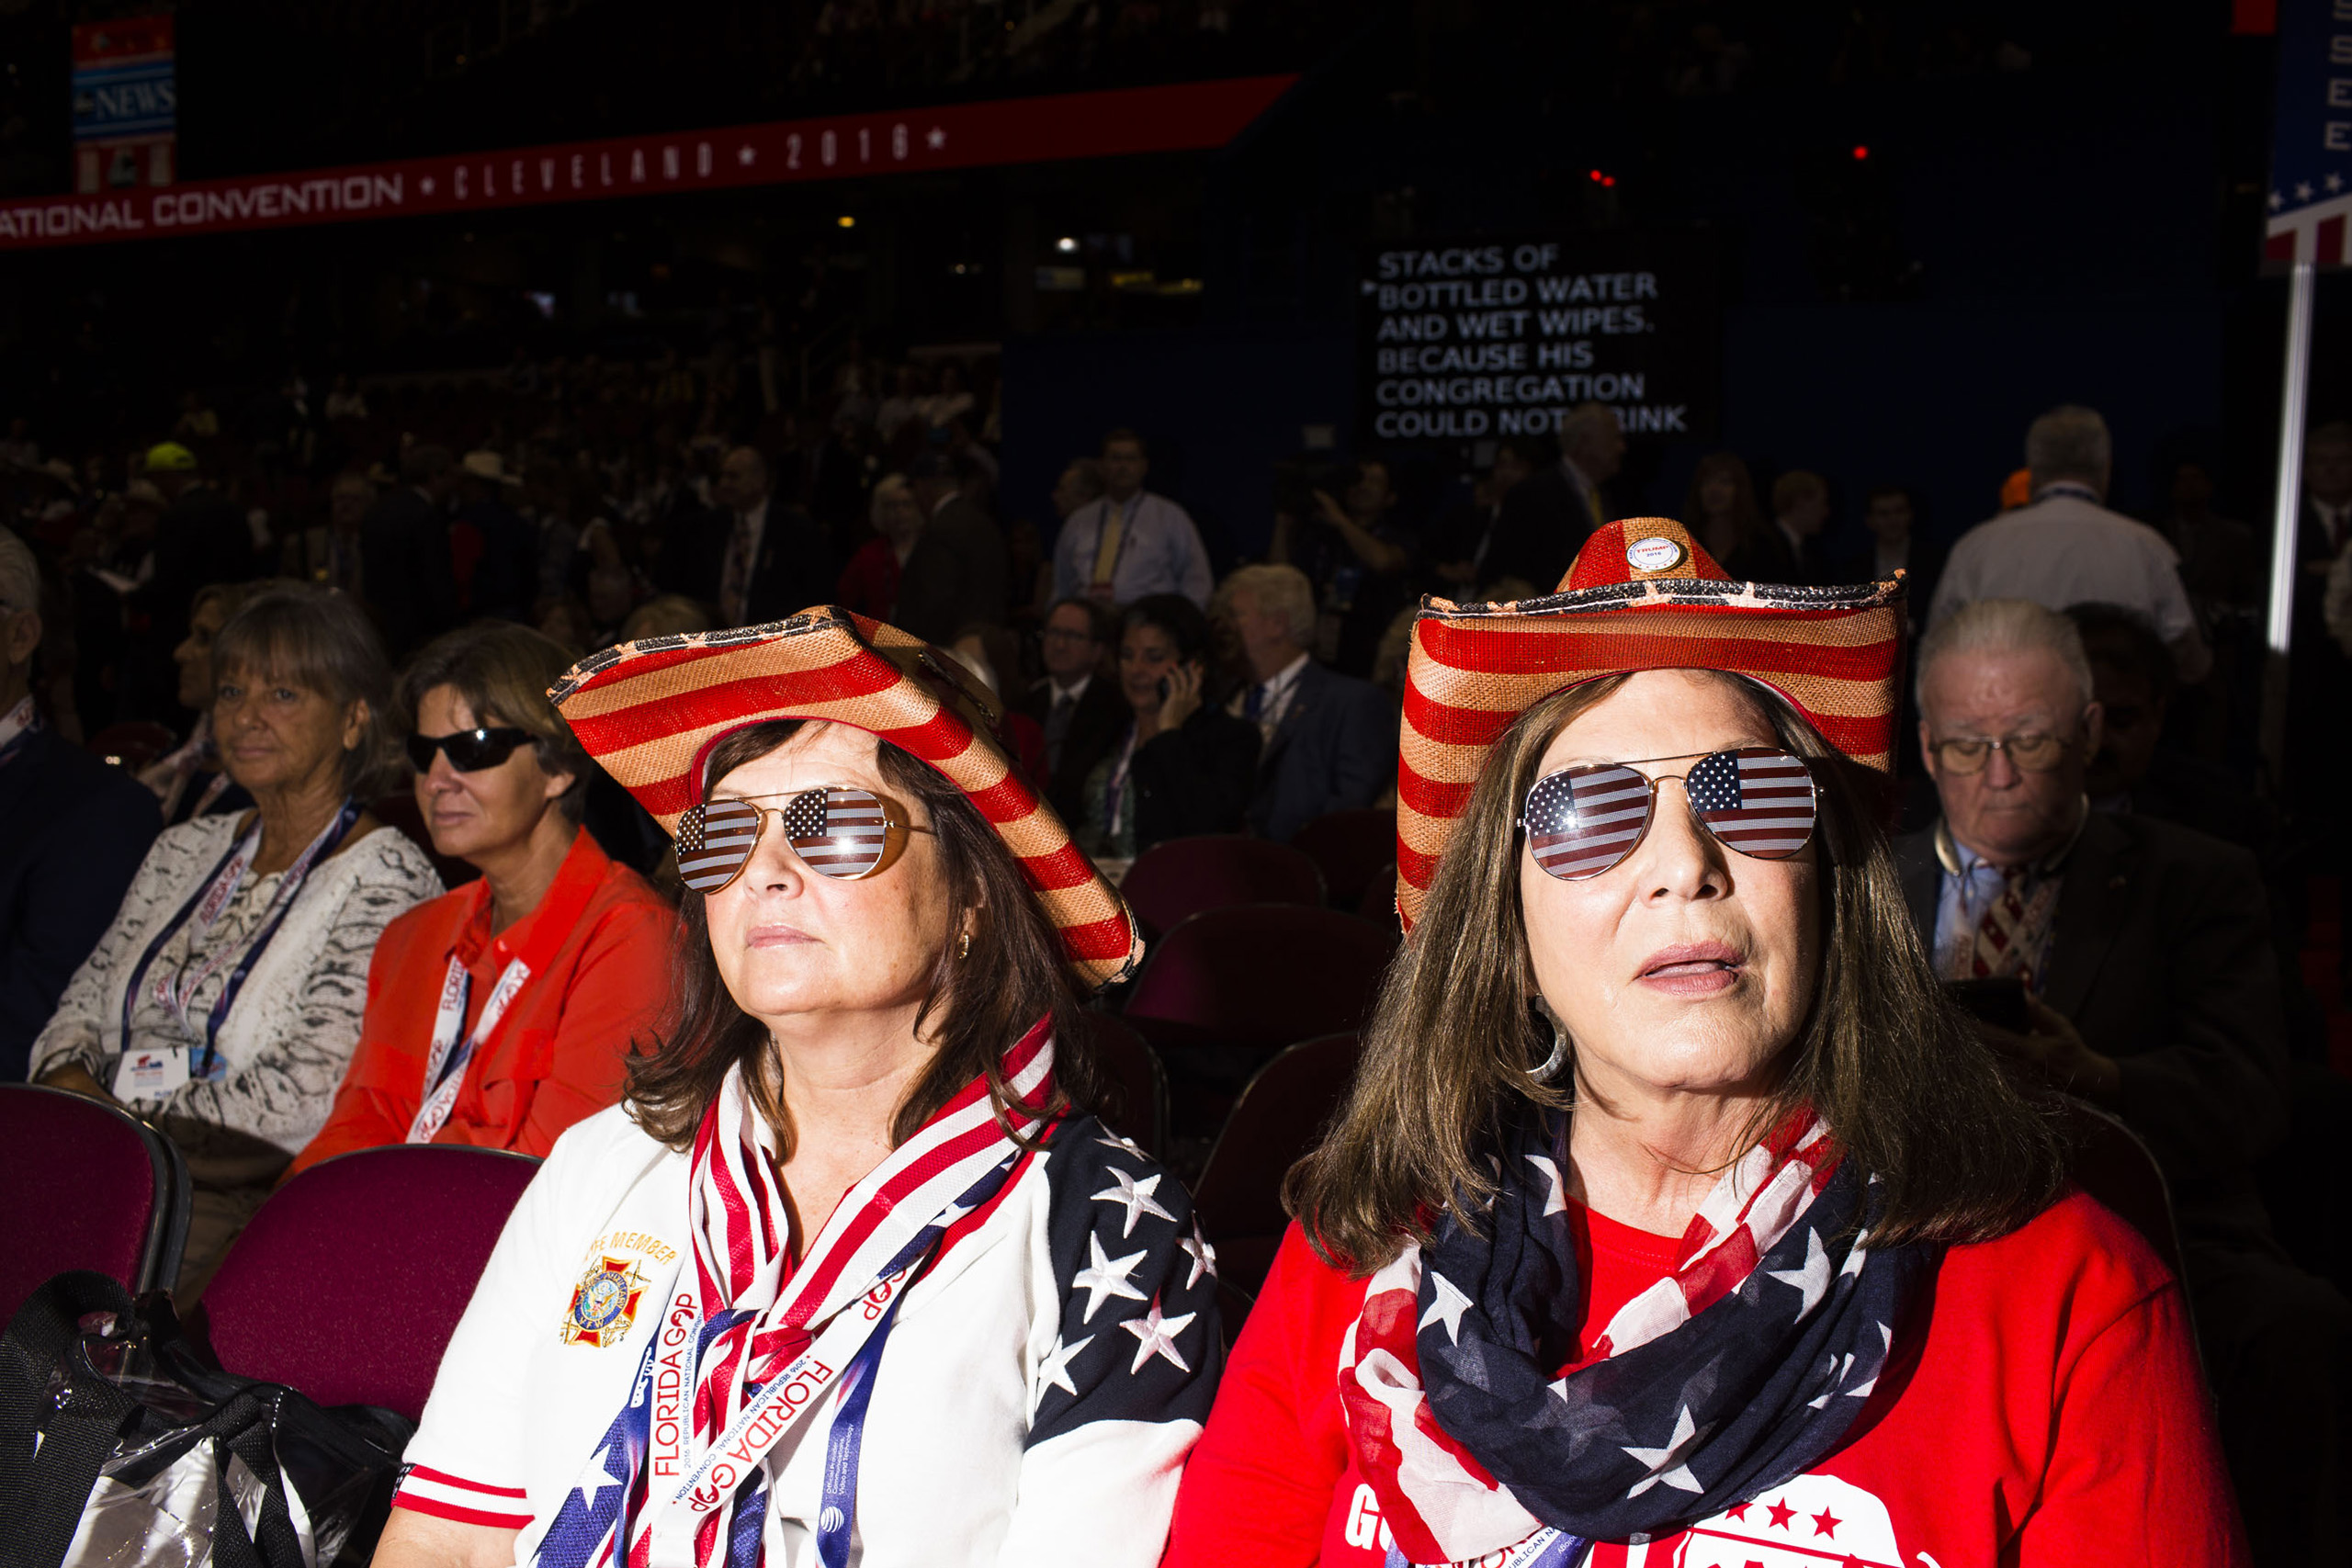 Florida delegates on the floor at the Republican National Convention, July 18, 2016 in Cleveland.